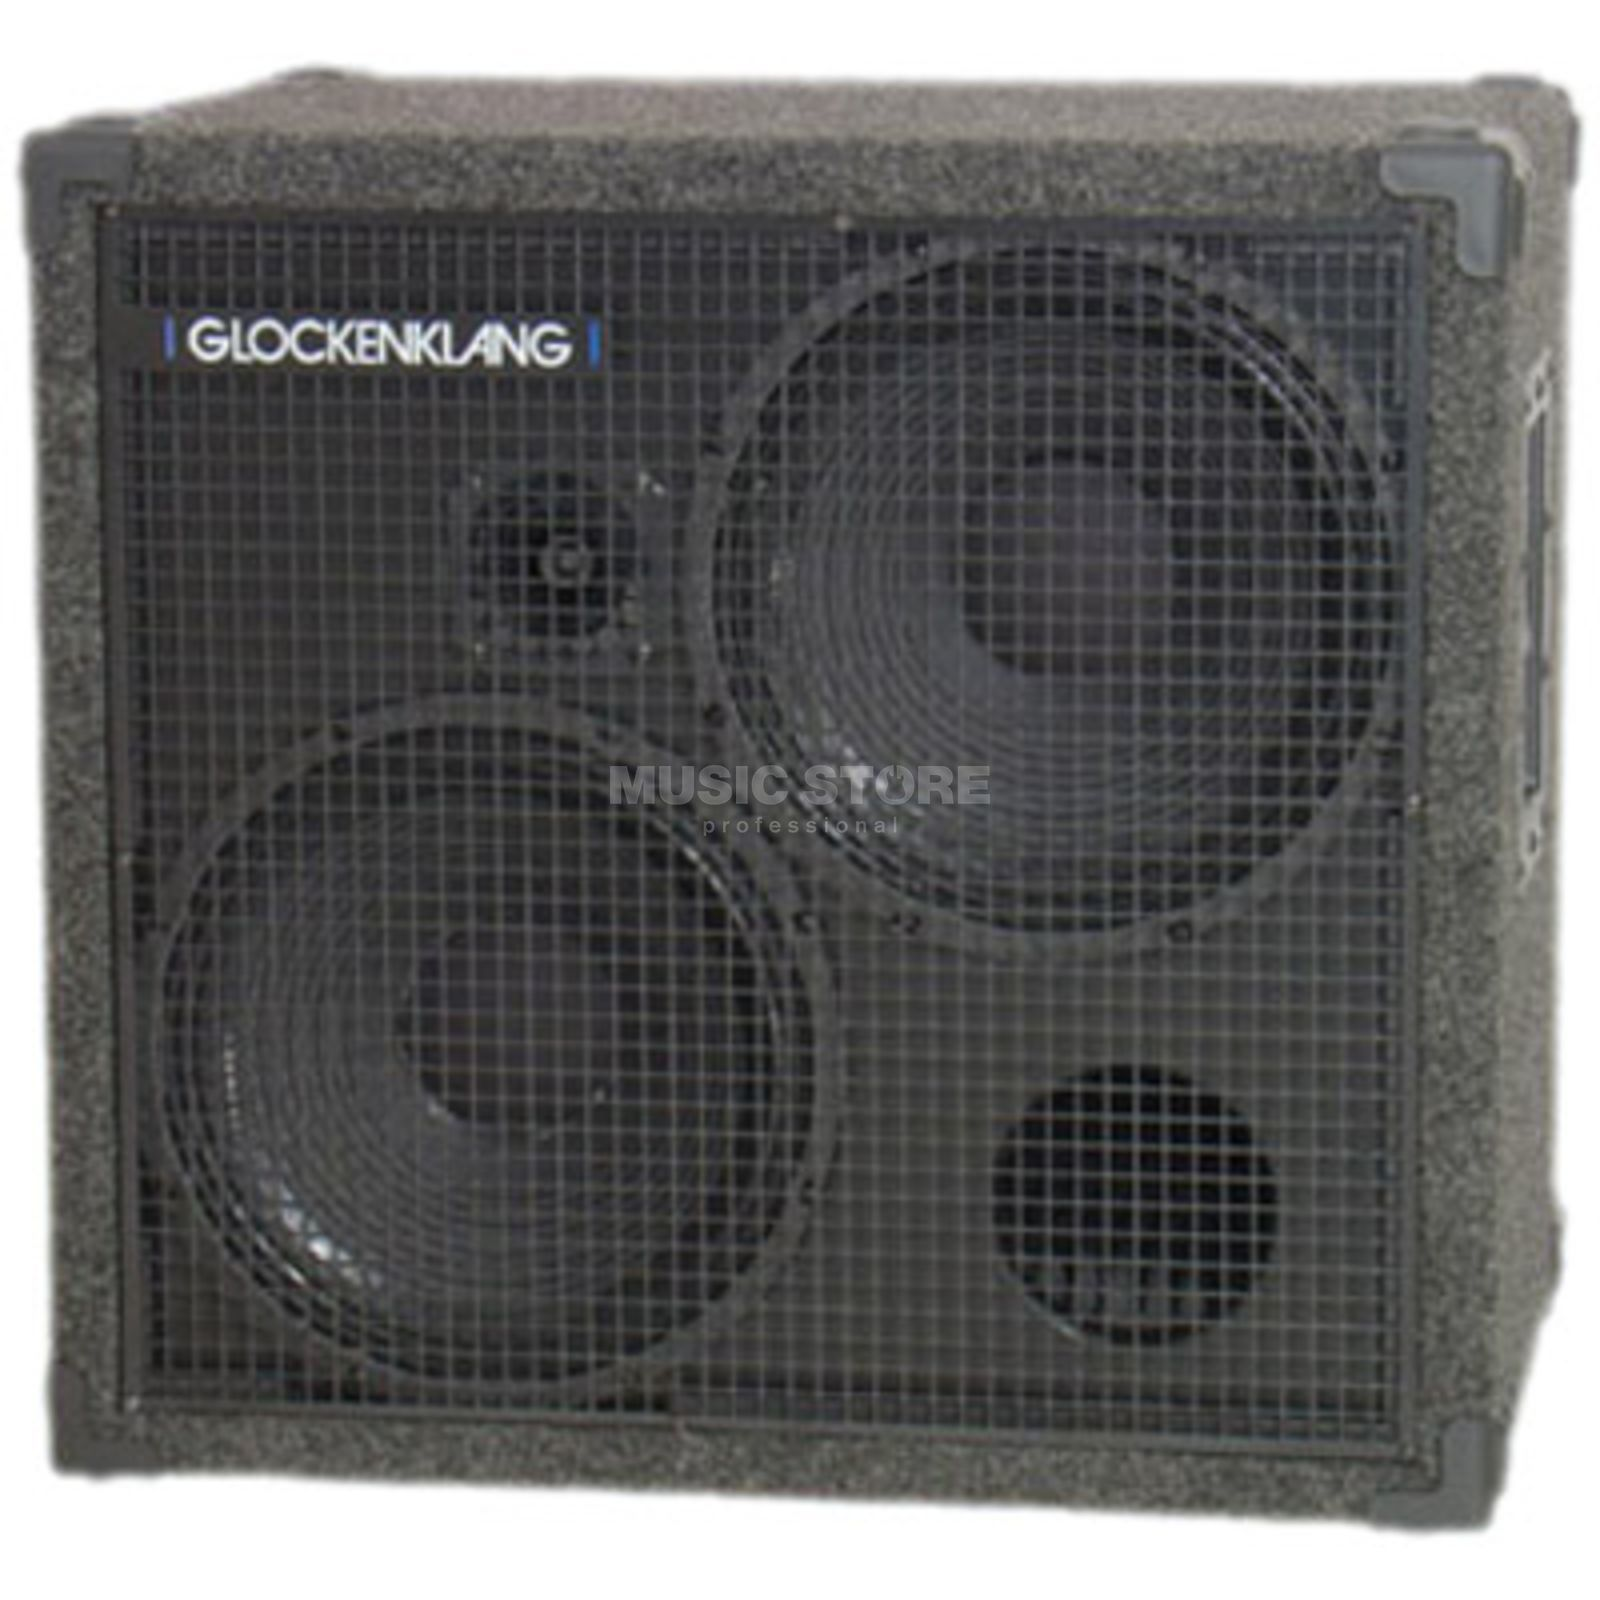 "Glockenklang Double Light Box 8 Ohm 500 Watt, 2x12"" Speaker + Horn Immagine prodotto"